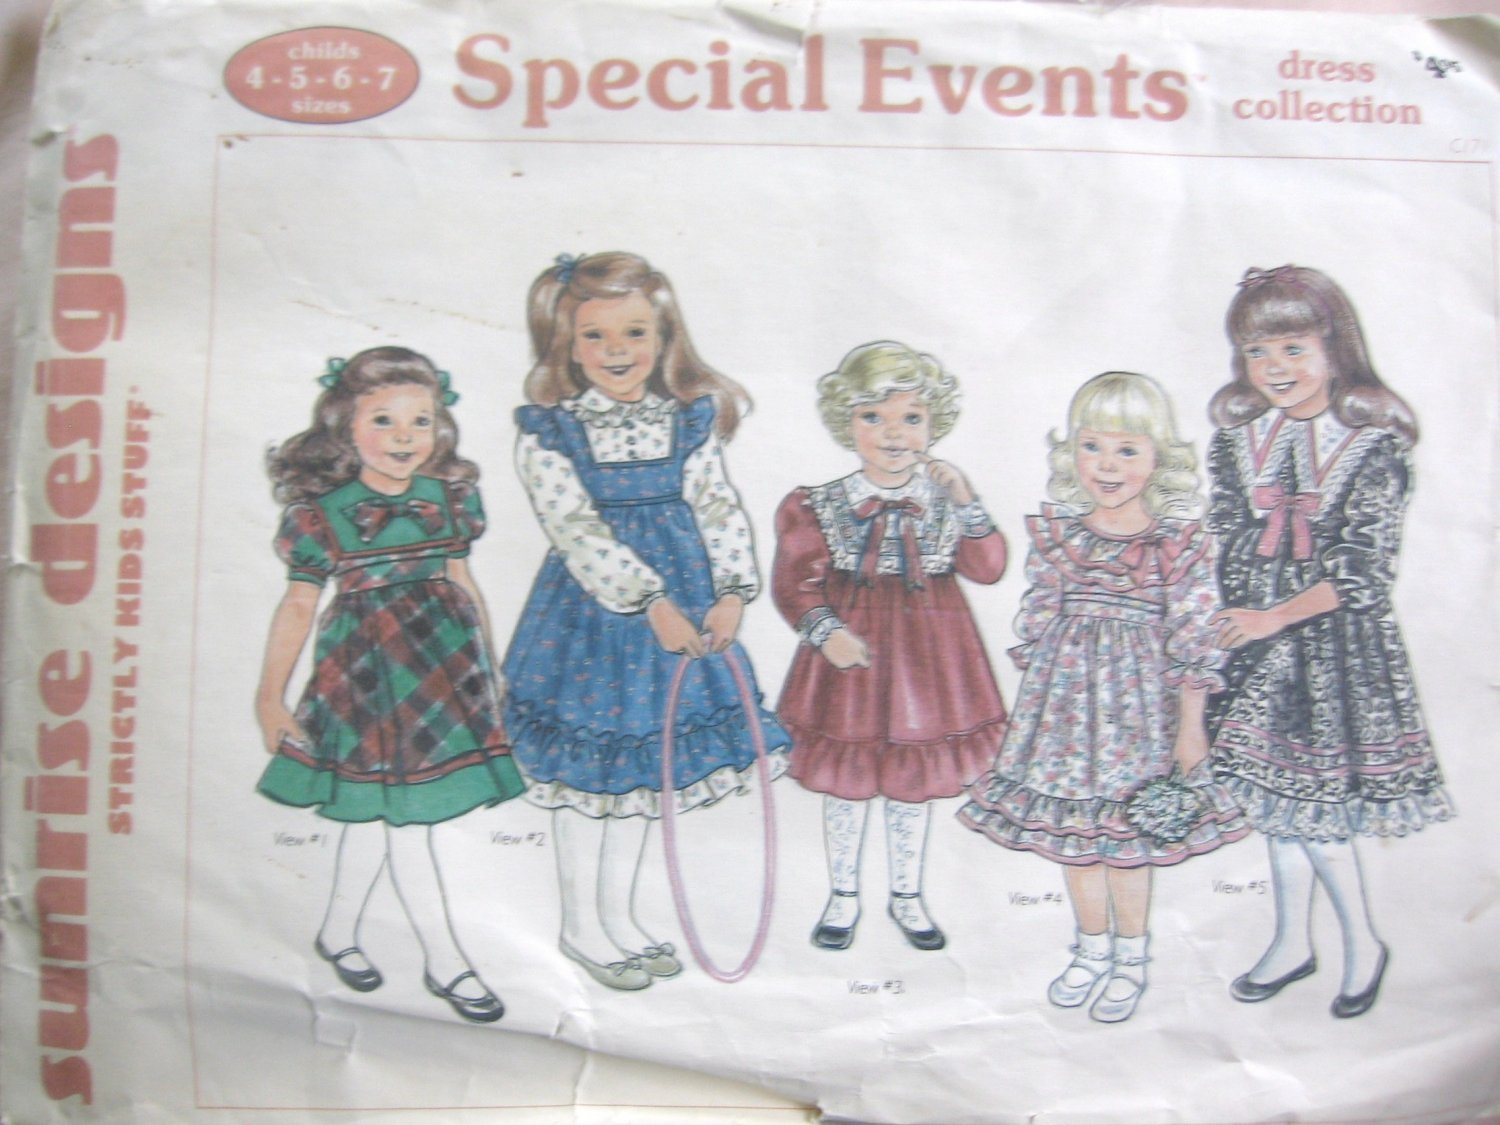 Sunrise Designs c 171  Girl's Special Events Dress Collection Size 4 5 6 7 Uncut